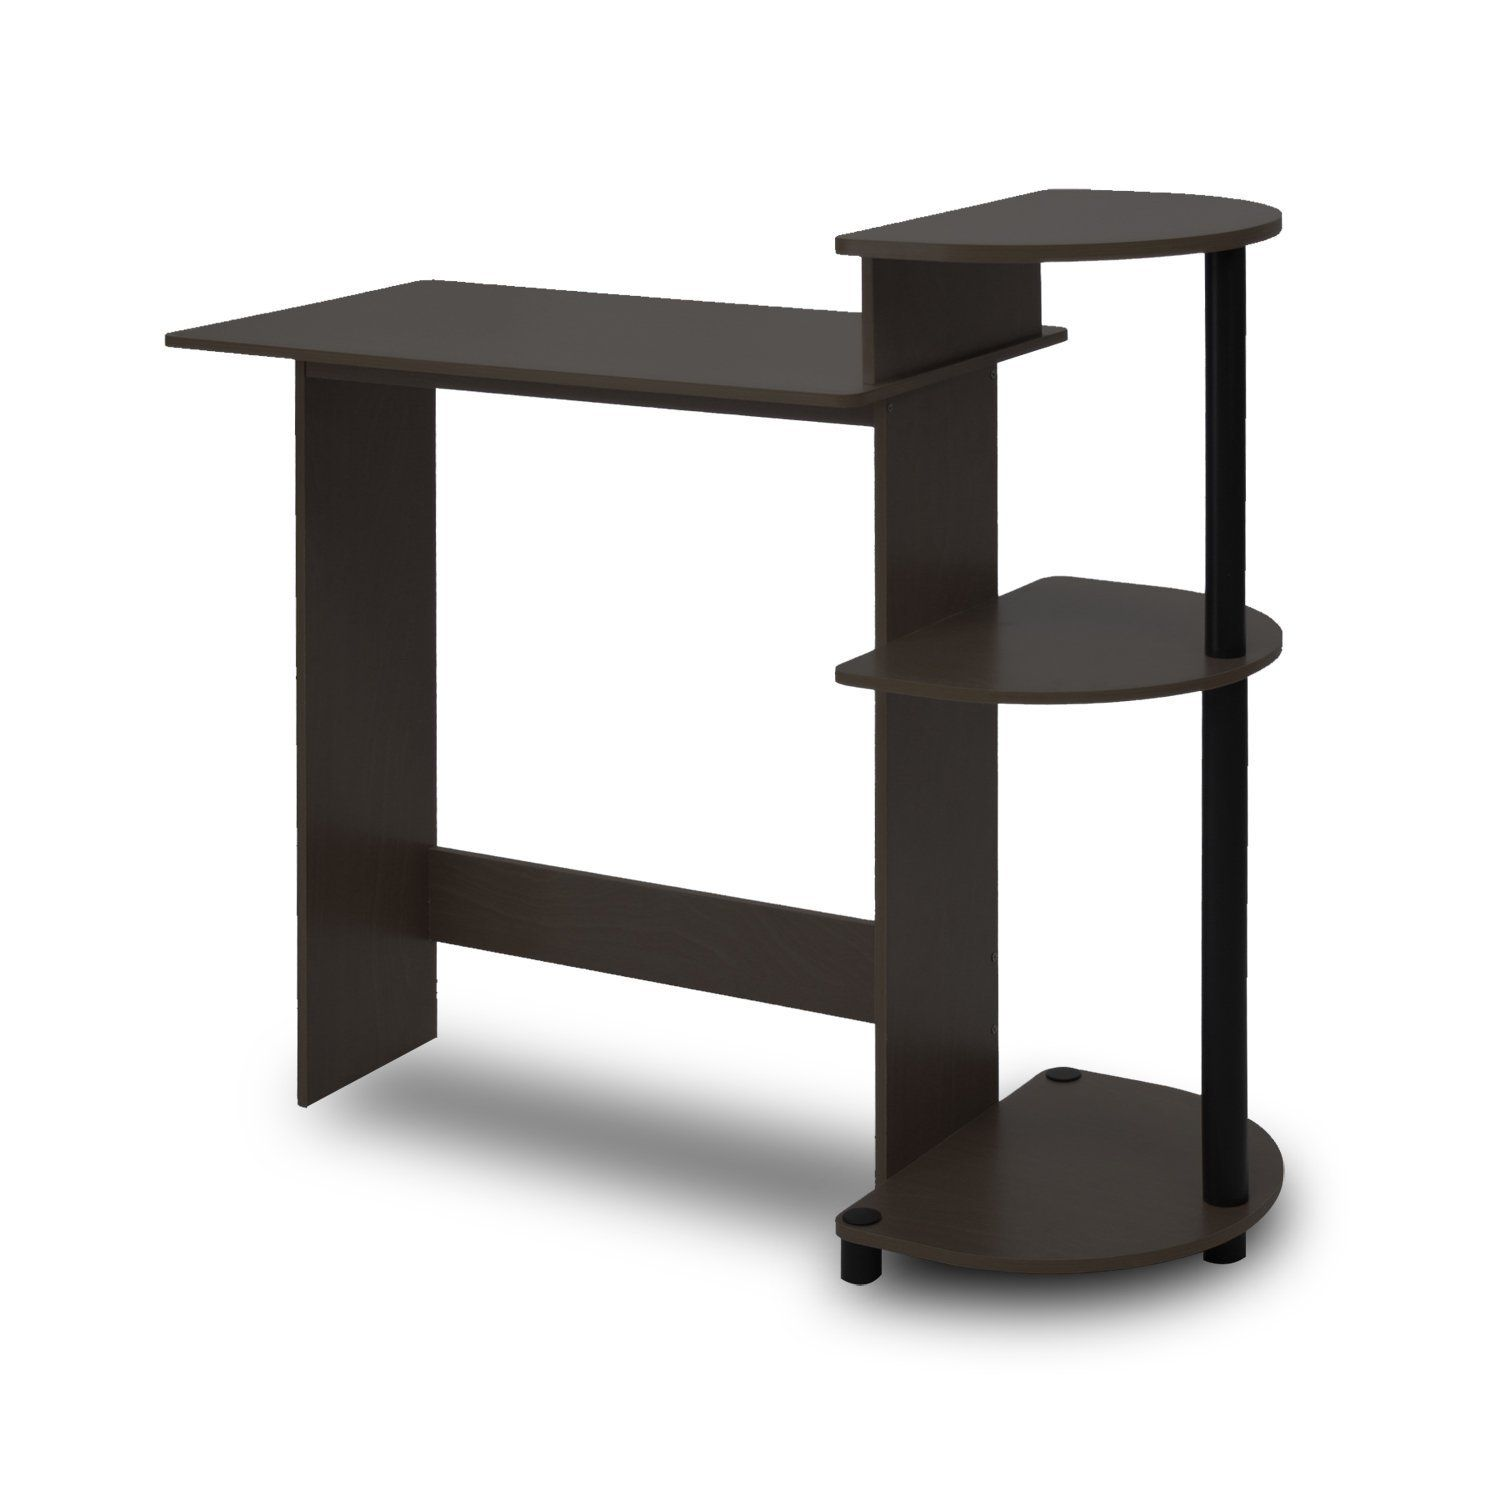 Executive office table with glass top  black small computer desk  home office furniture ideas check